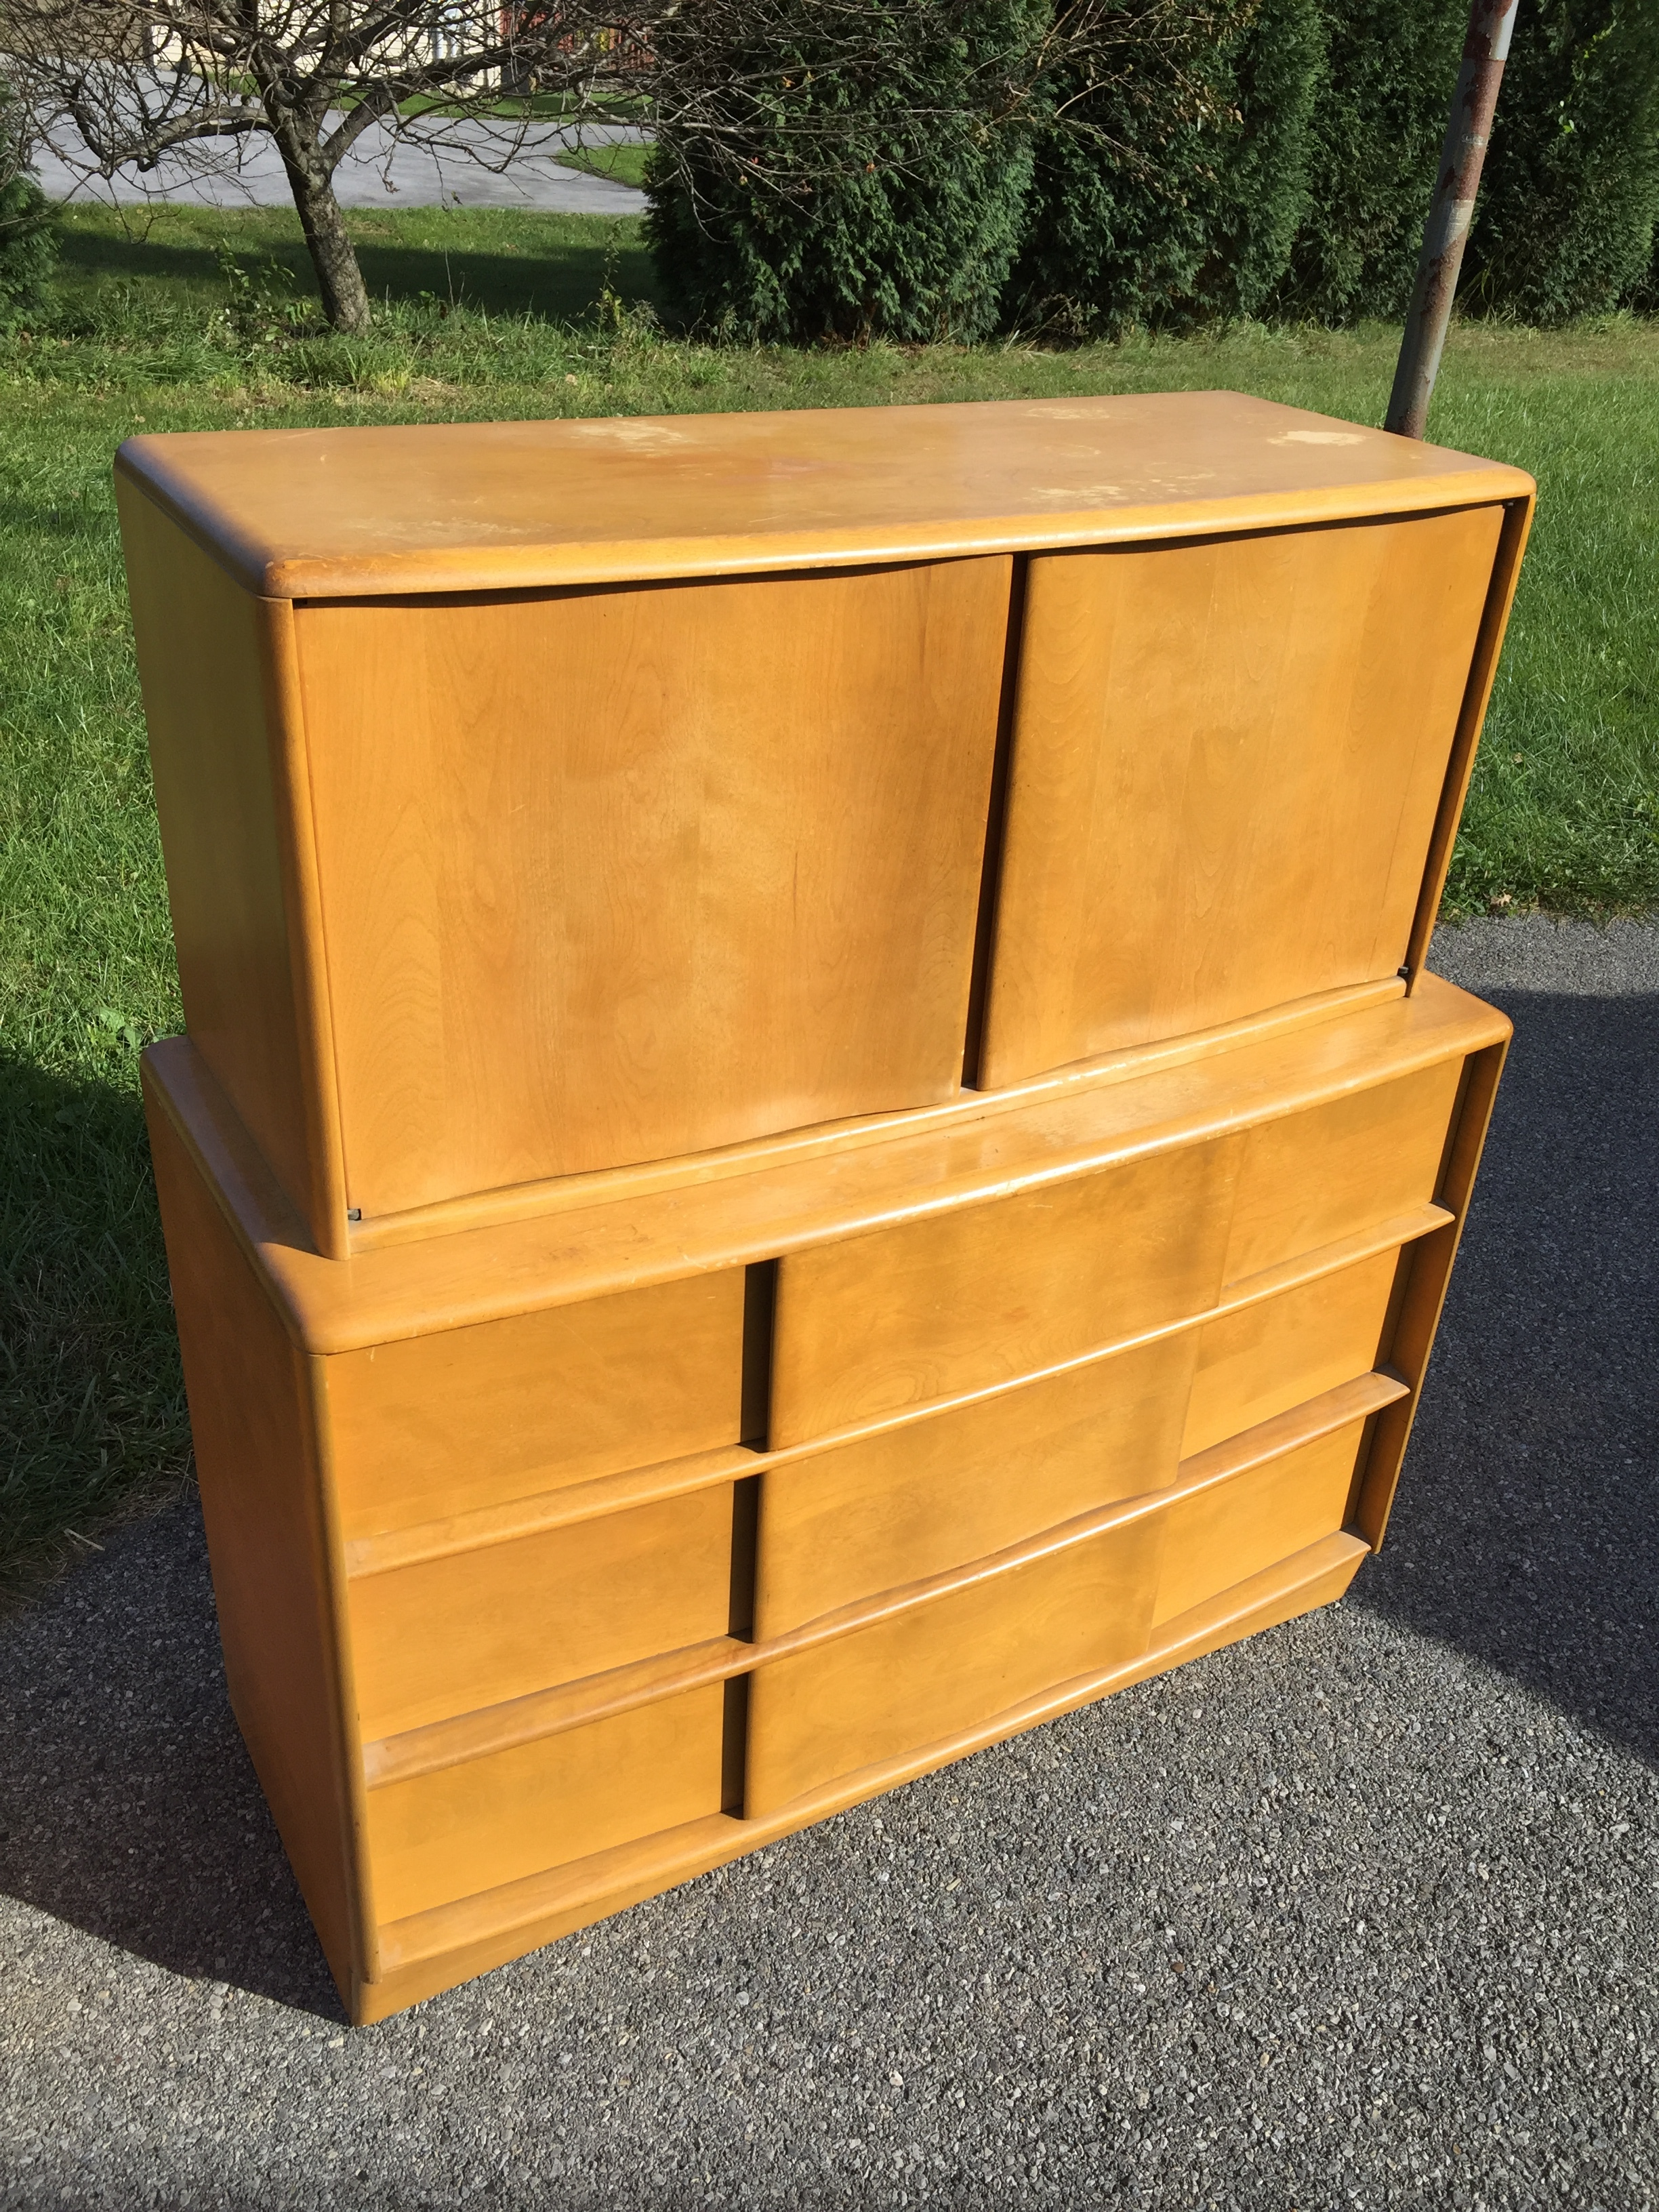 SOLD Heywood Wakefield Sculptura 3 drawer chest with top deck cabinet in Wheat finish. Needs some finish love especially on tops but a super awesome piece and structurally just fine. $350